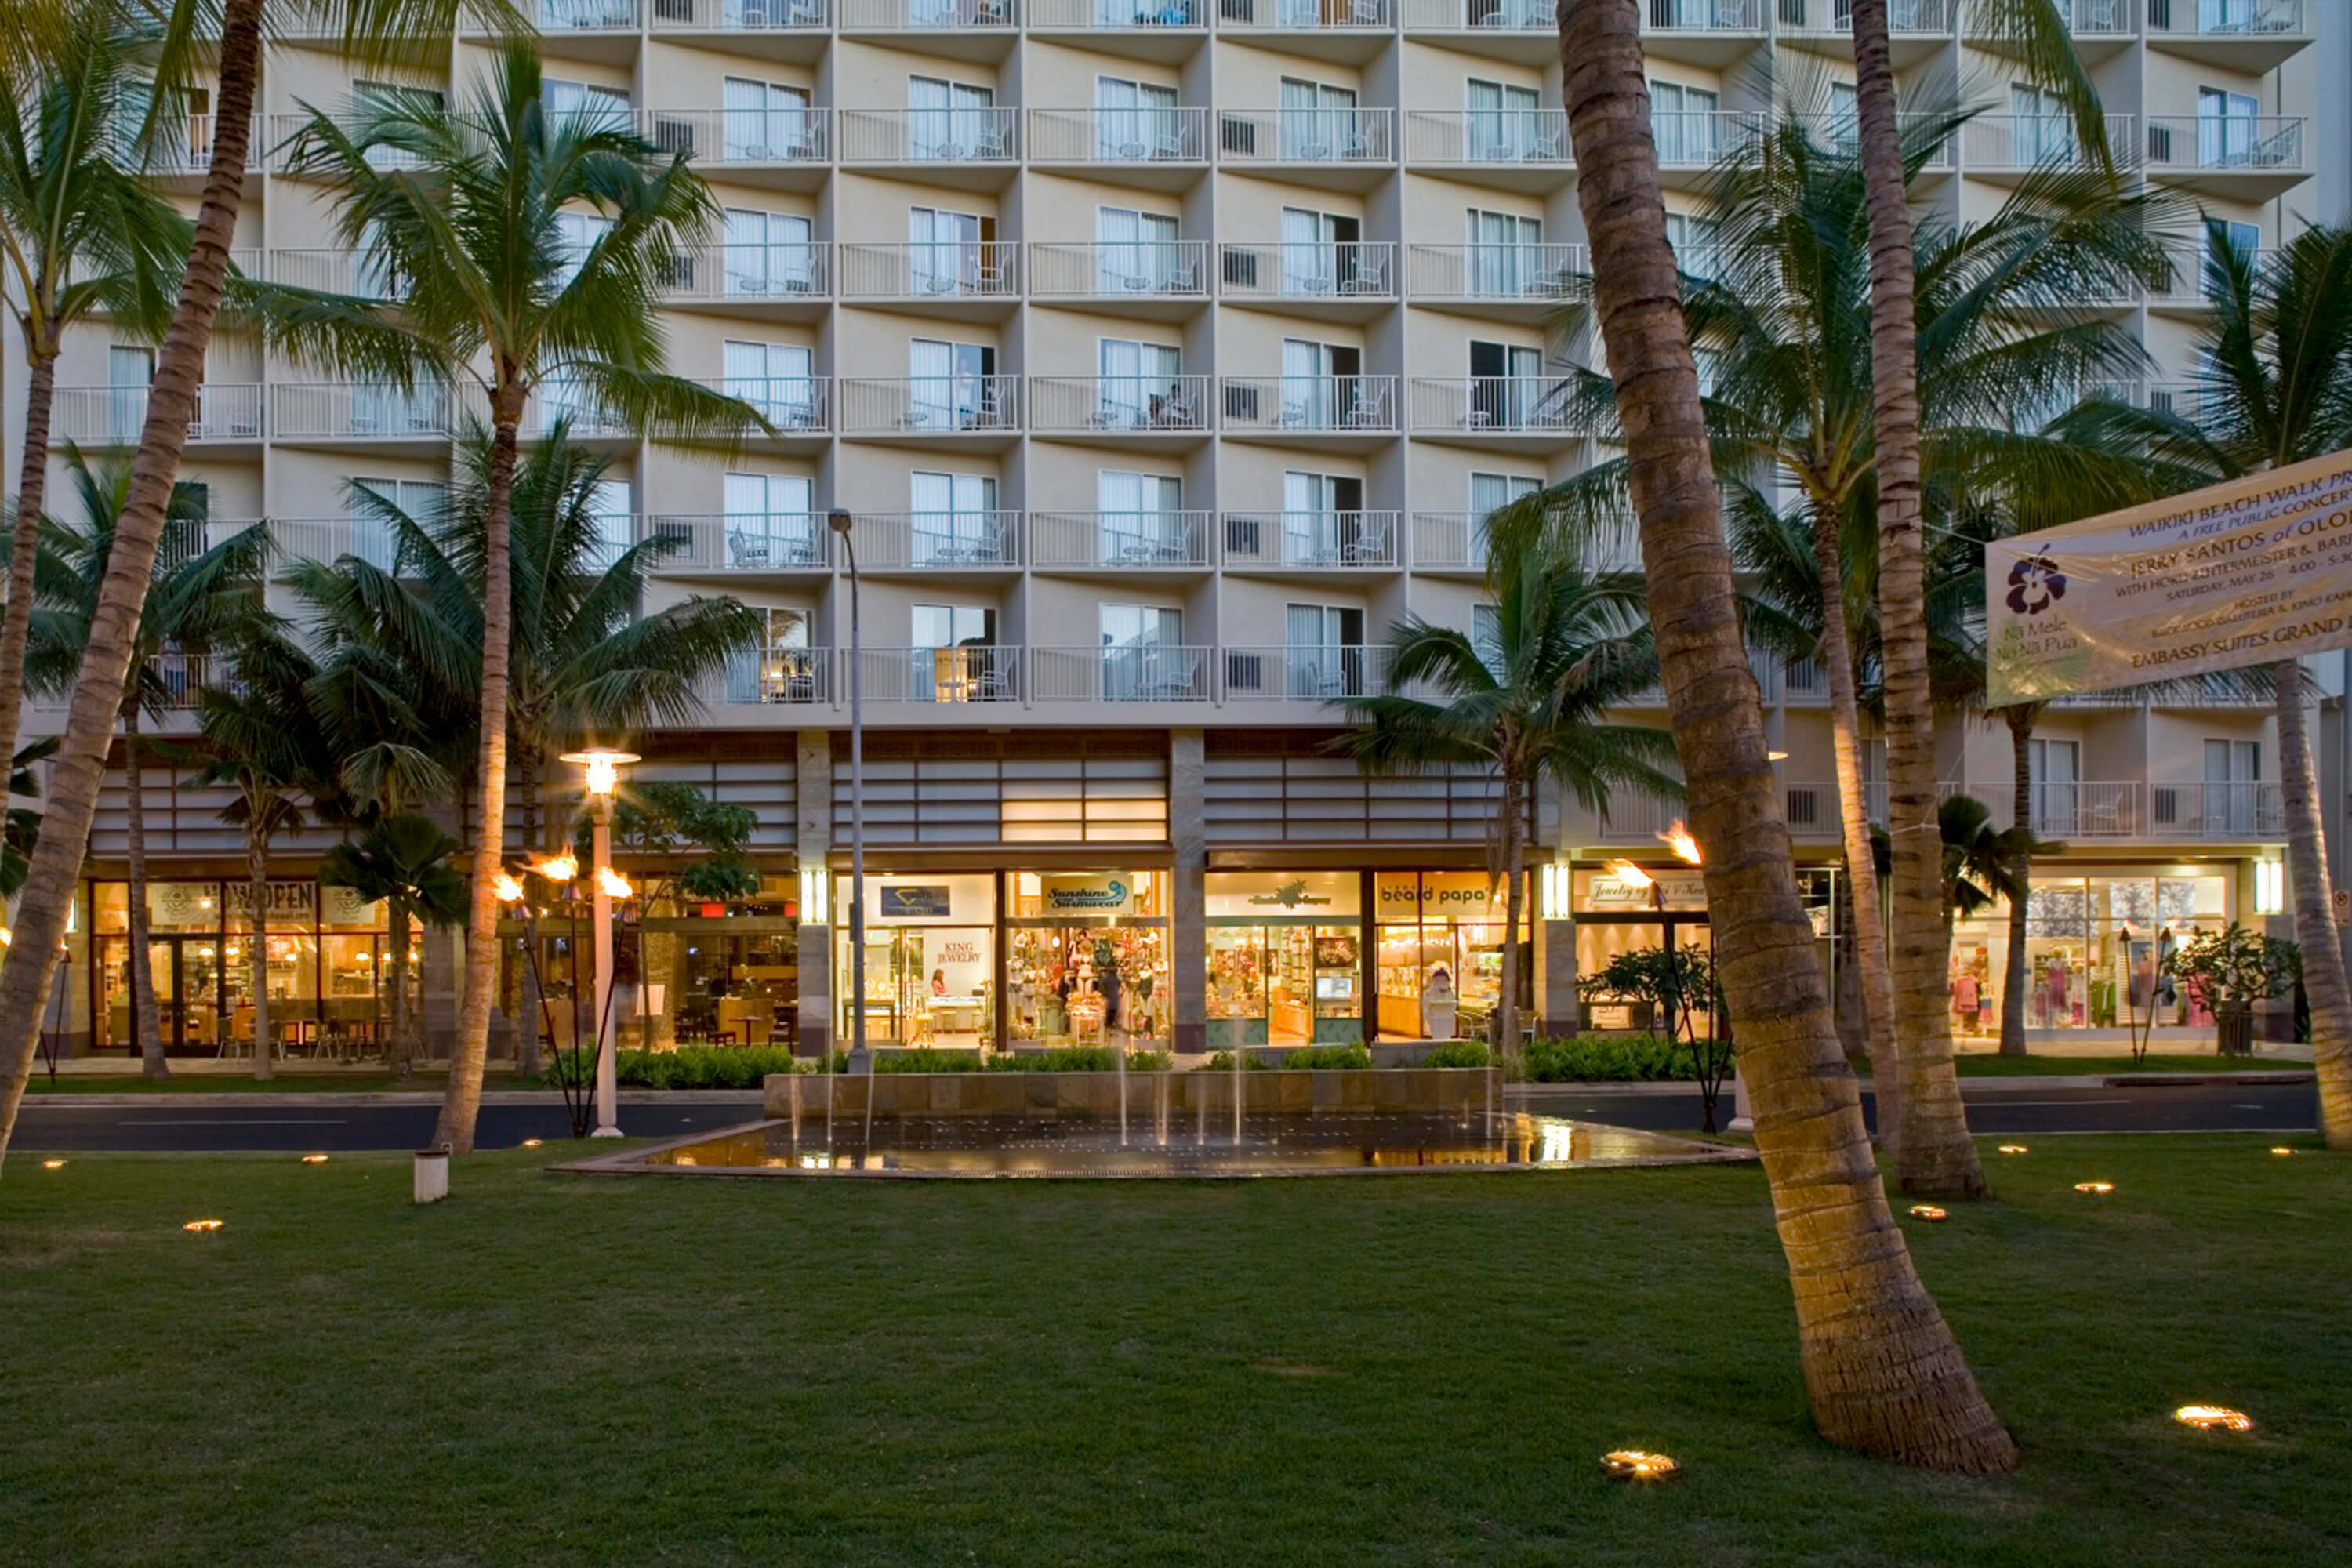 Wyndham Vacation Ownership Resort At Waikiki Beach Walk A Tropical Getaway In The Heart Of